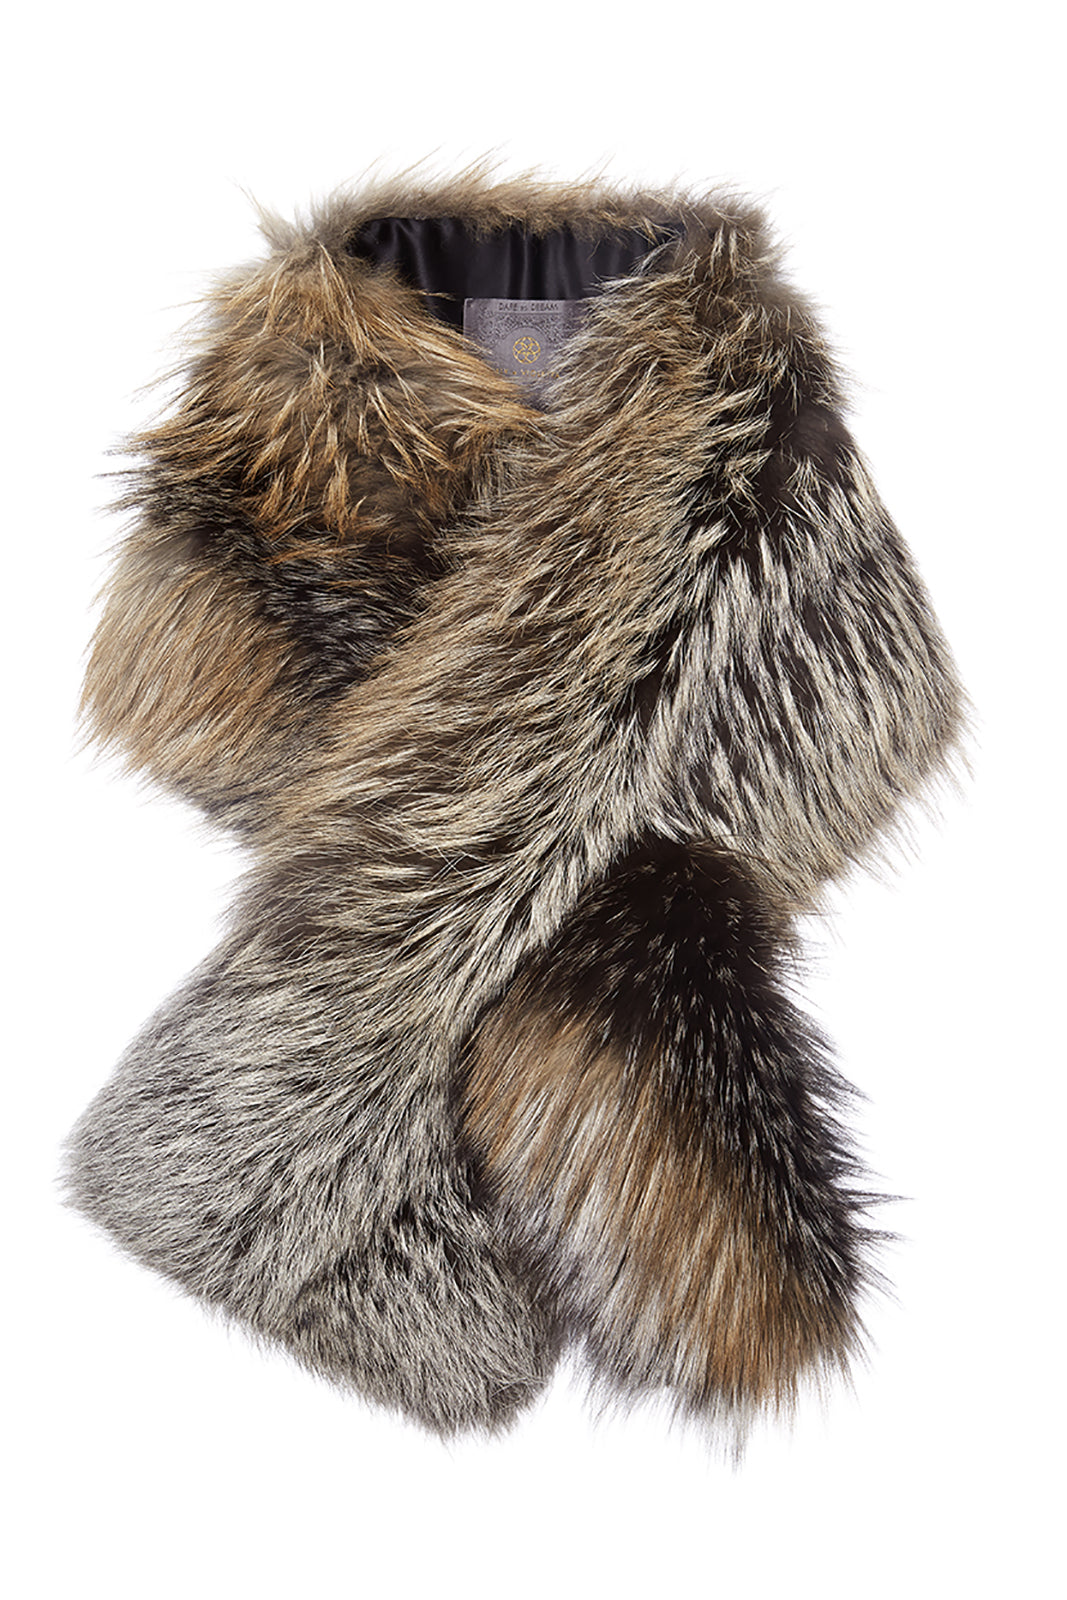 Arabella Cross Fox Fur Scarf Gold